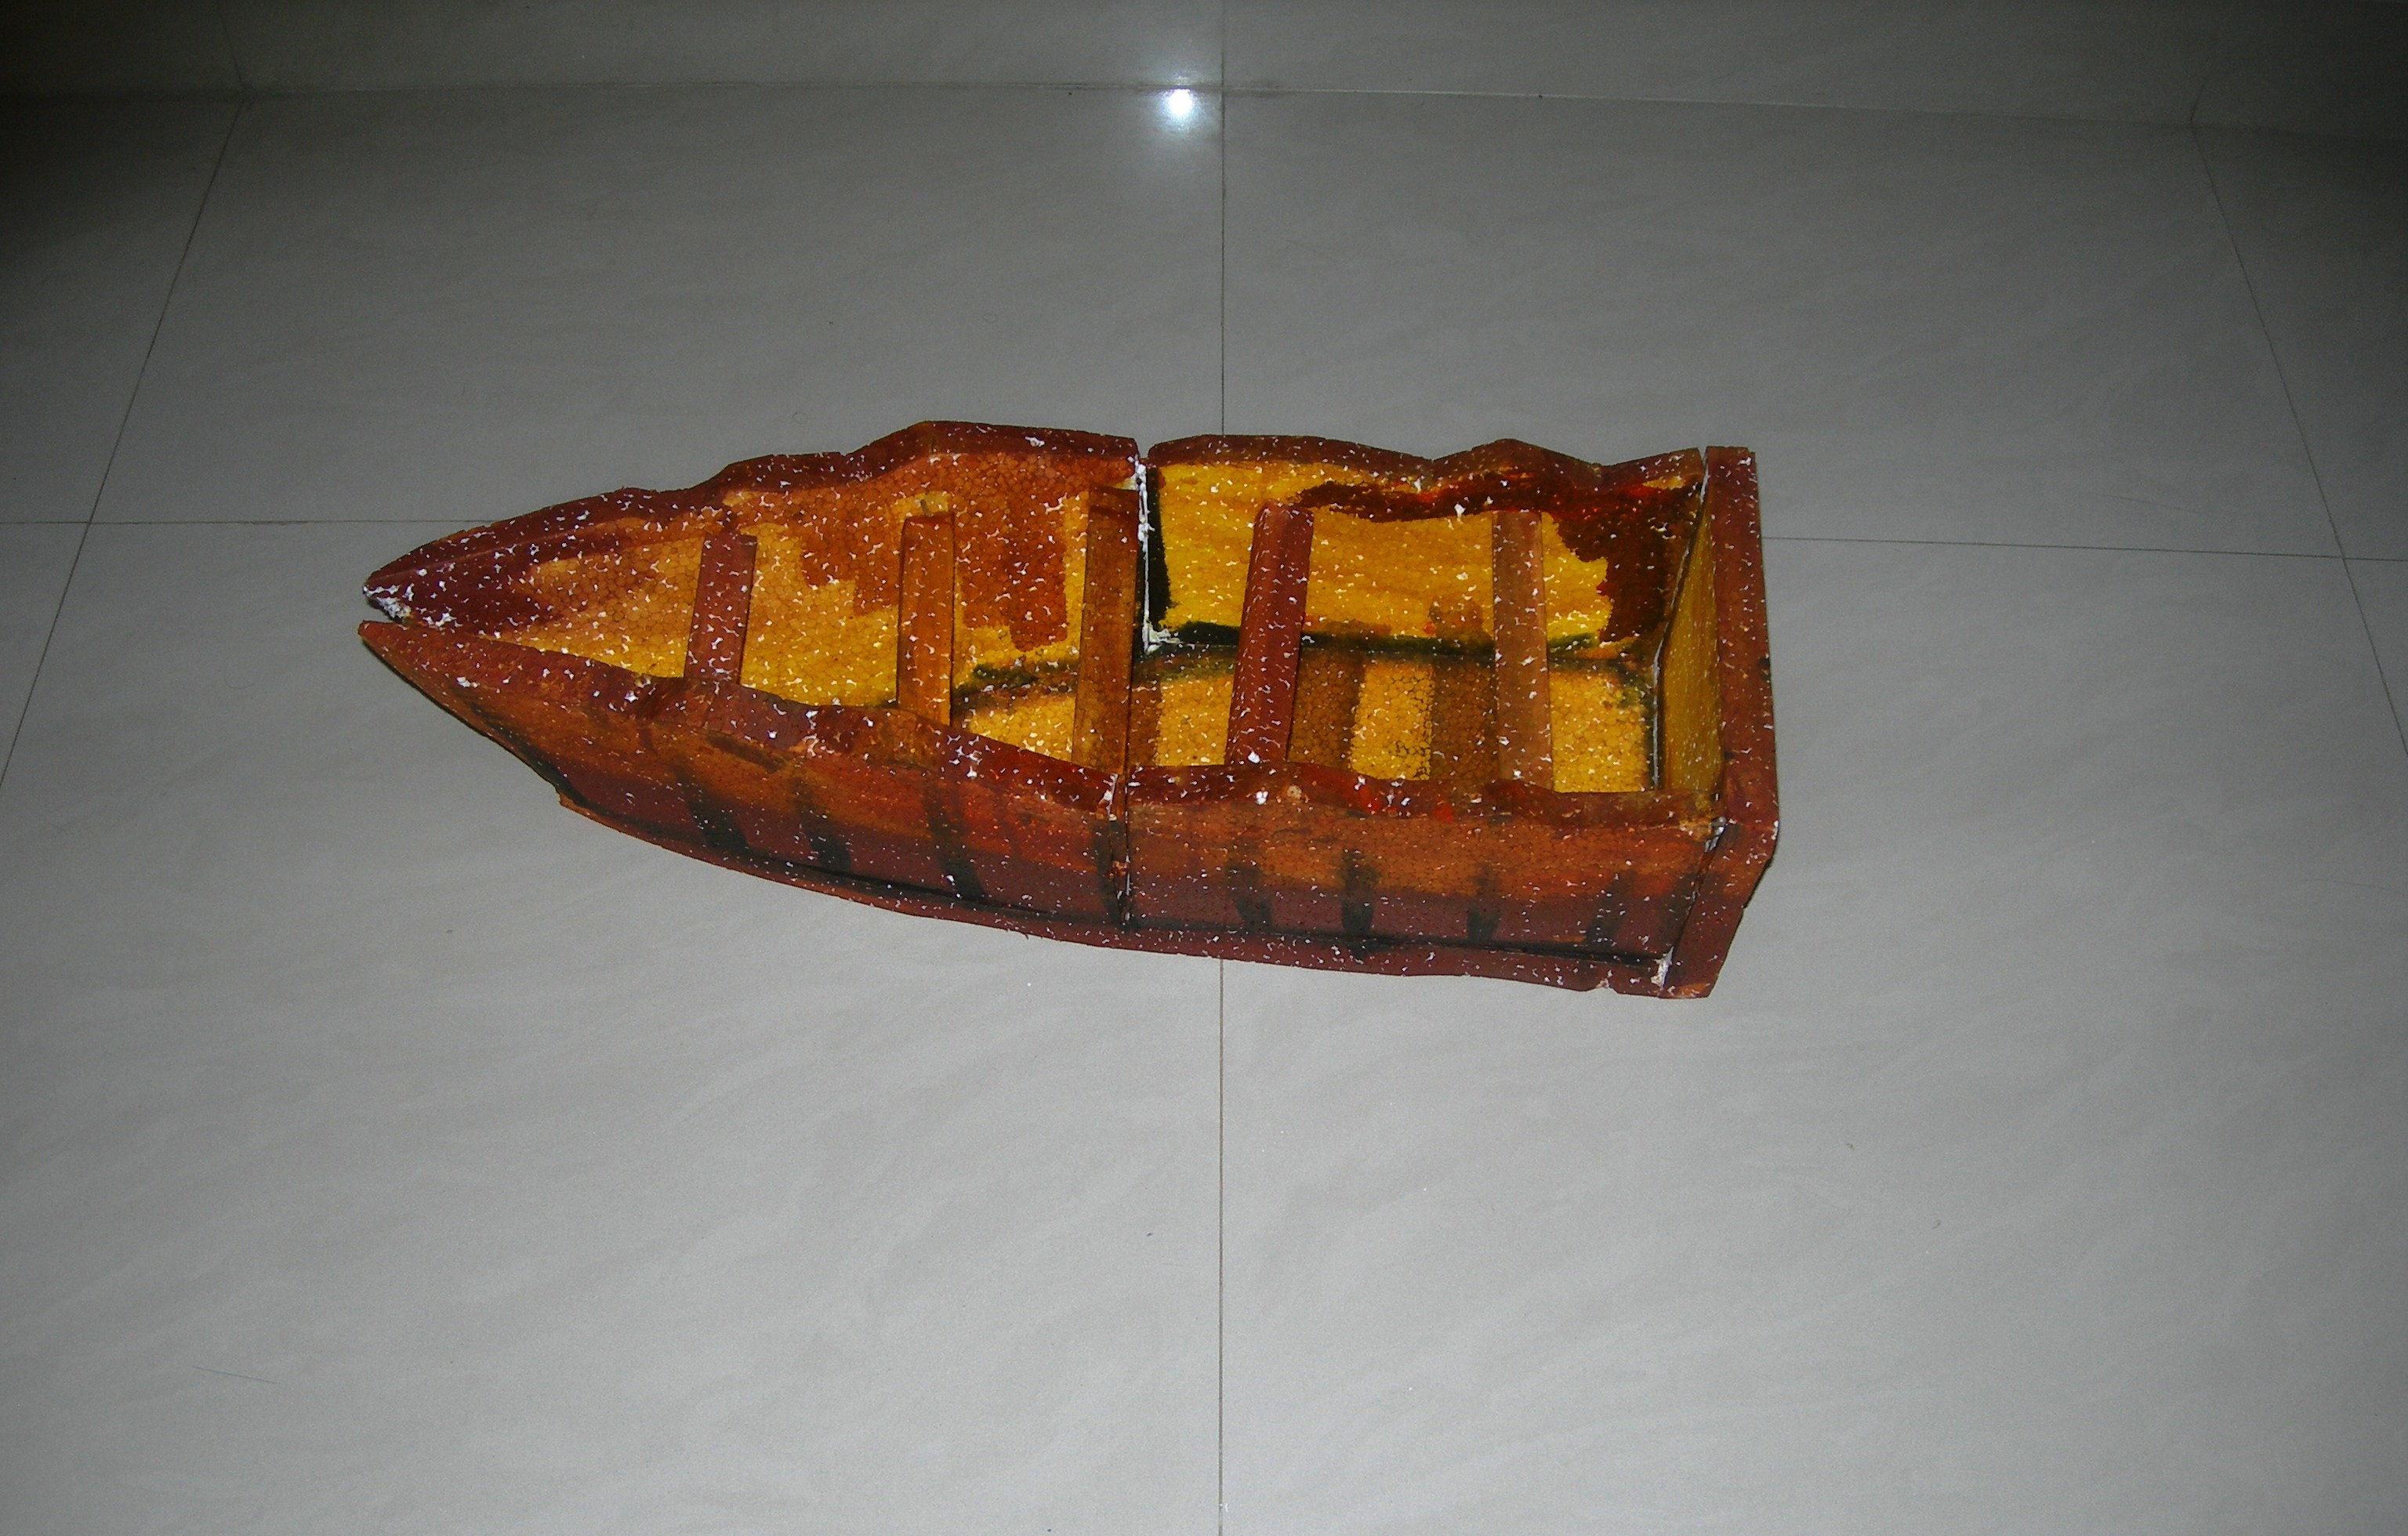 The boat supposedly built from the trunk of the apple tree :p